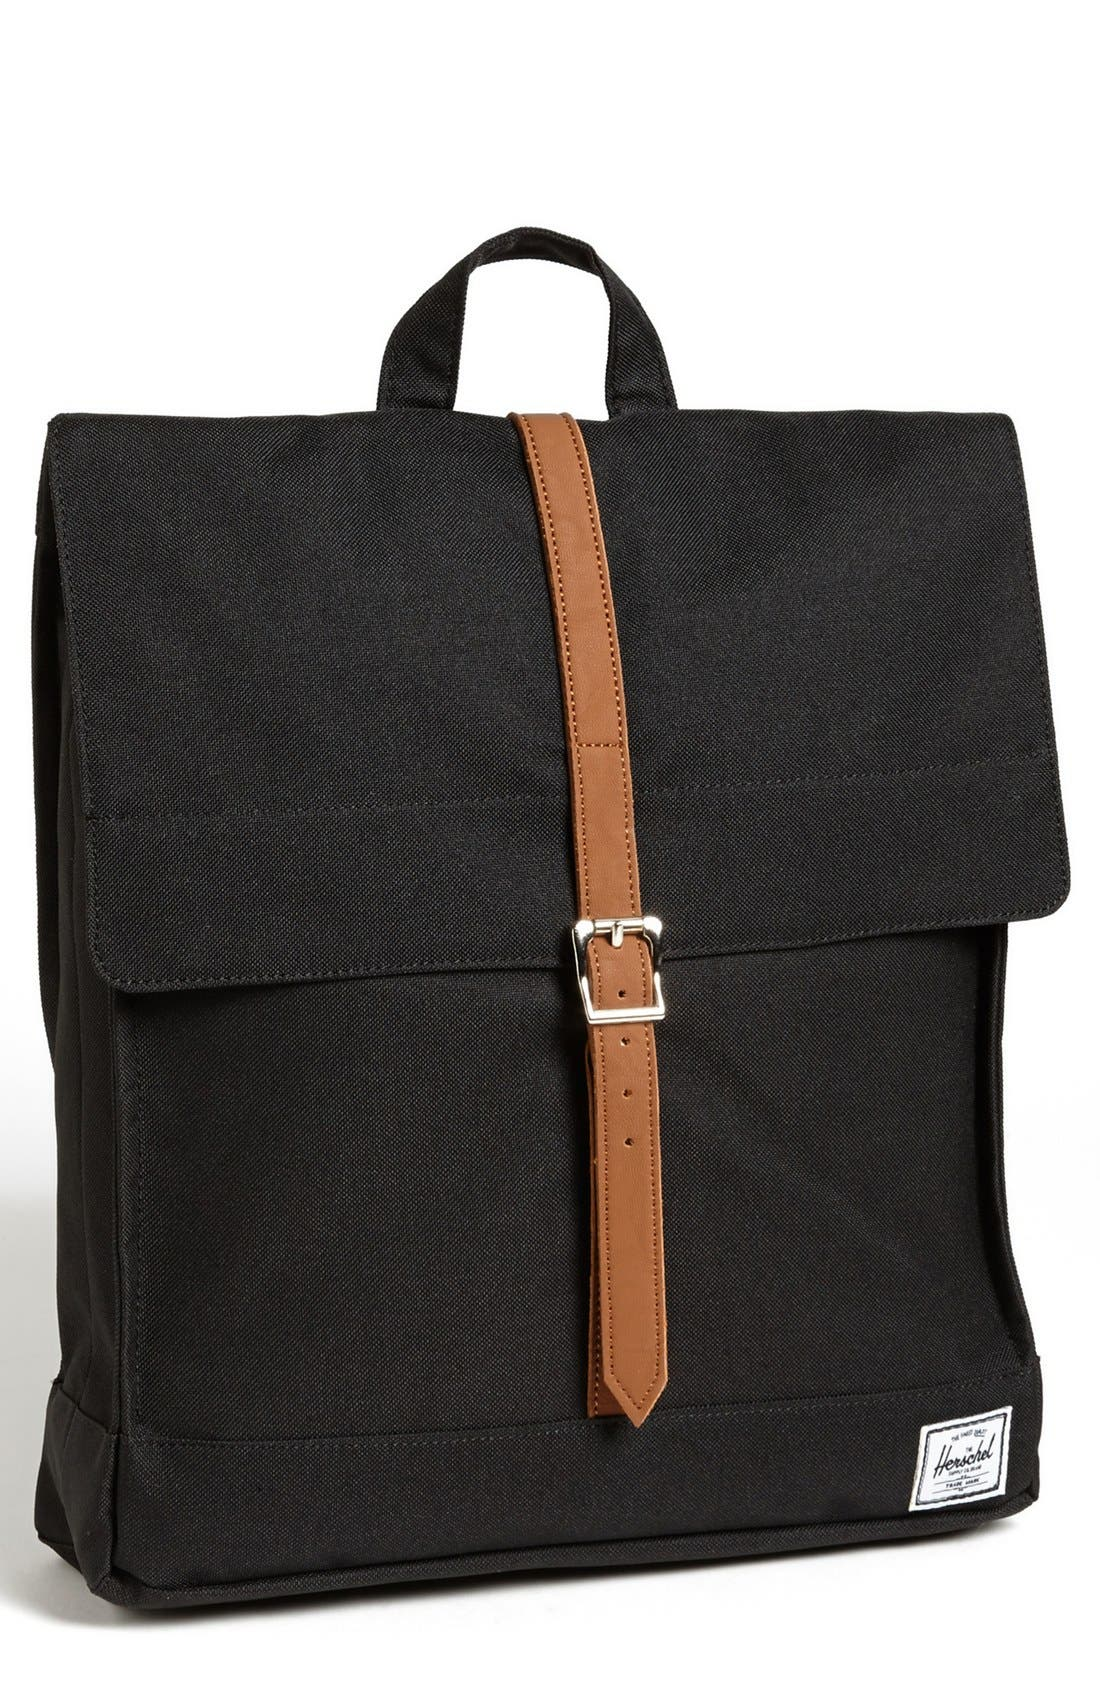 Main Image - Herschel Supply Co. 'City - Mid Volume' Backpack